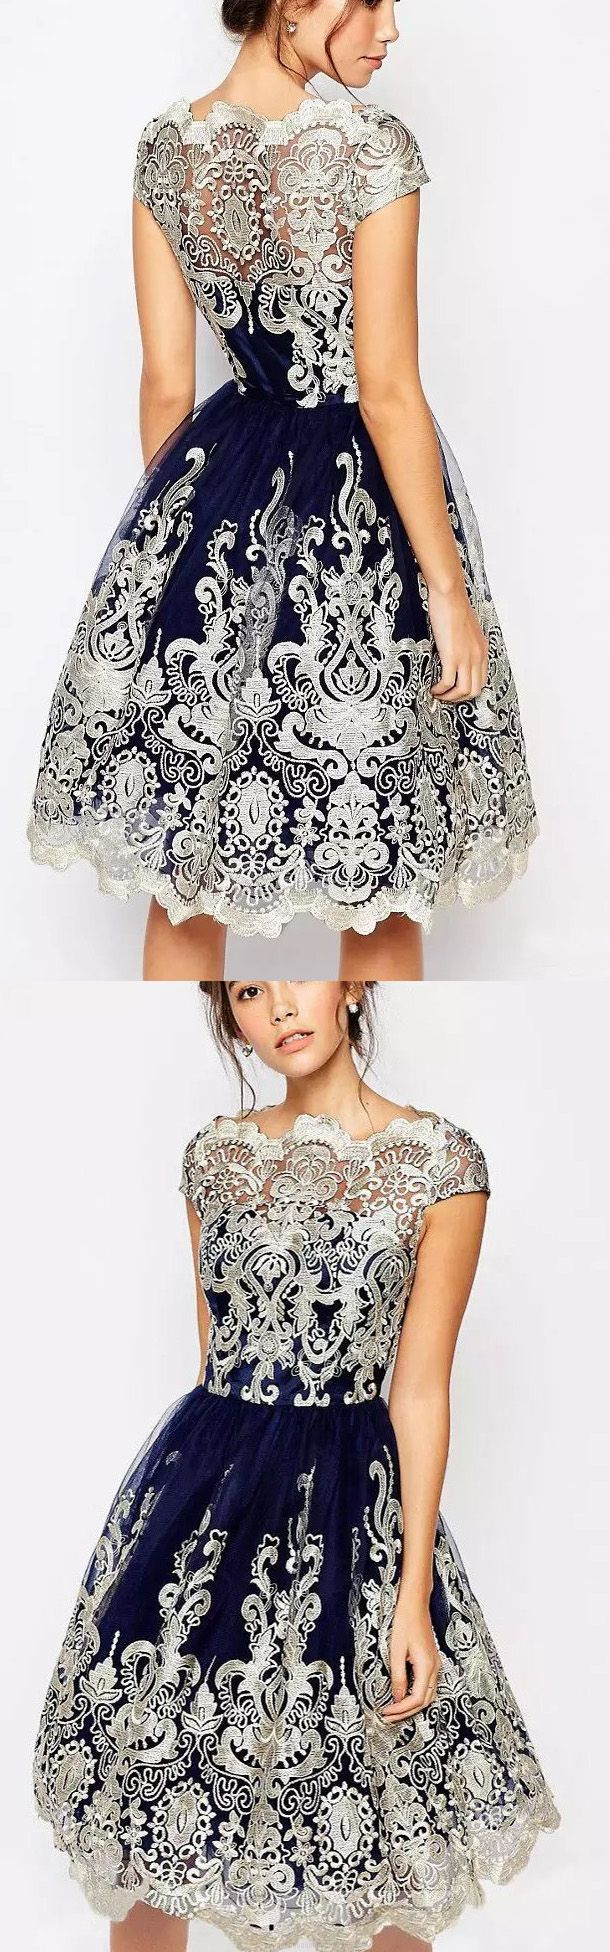 Cheap Homecoming Dresses, Short Homecoming Dresses Cheap, Homecoming Dresses Cheap, Short Homecoming Dresses, Cheap Short Homecoming Dresses, Lace Homecoming Dresses, A Line dresses, Navy Lace dresses, Short Sleeve Dresses, A line Homecoming Dresses, Navy Homecoming Dresses, Short Homecoming Dresses With Lace Cap Sleeve Knee-length